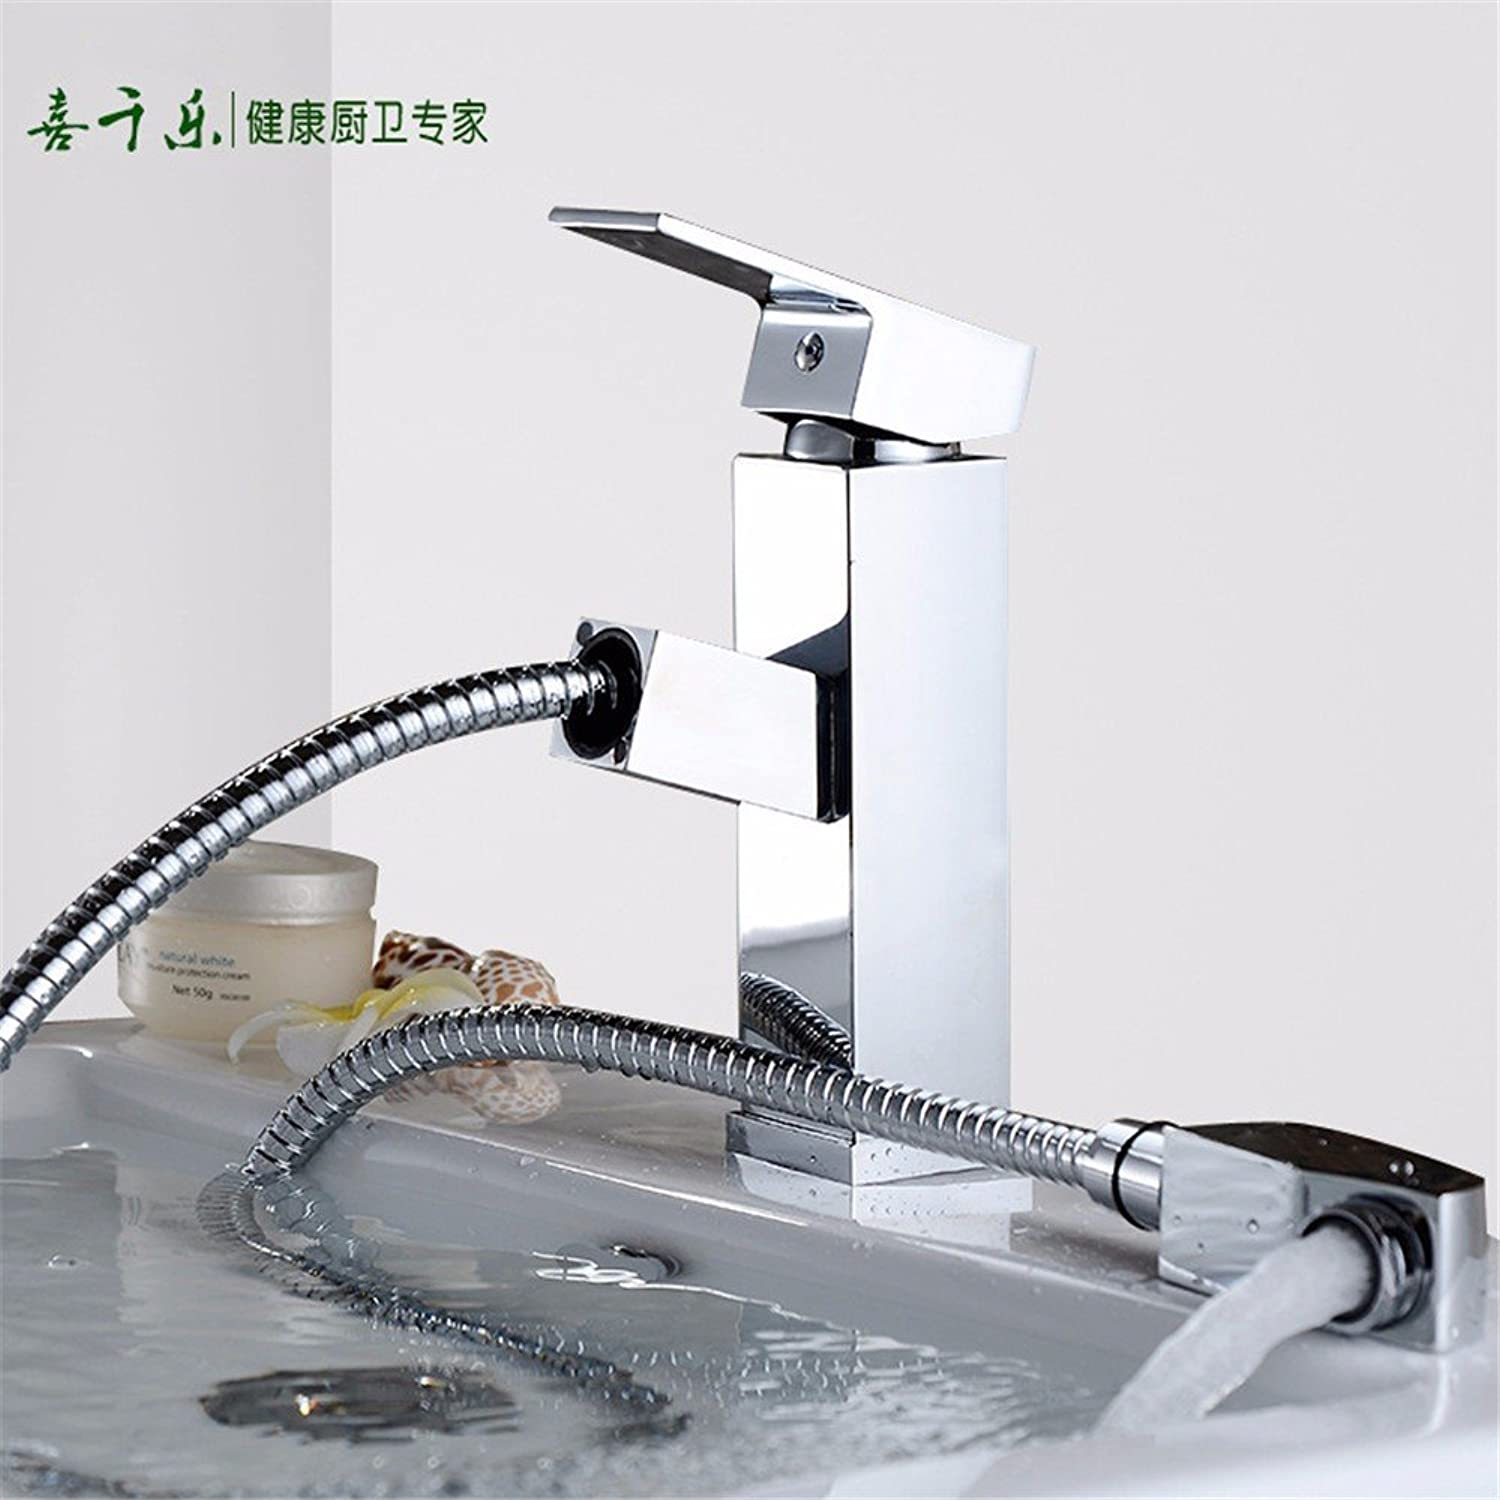 Hlluya Professional Sink Mixer Tap Kitchen Faucet All copper pull-down faucet single handle single hole hot and cold basin tap square telescoping shampoo Faucet